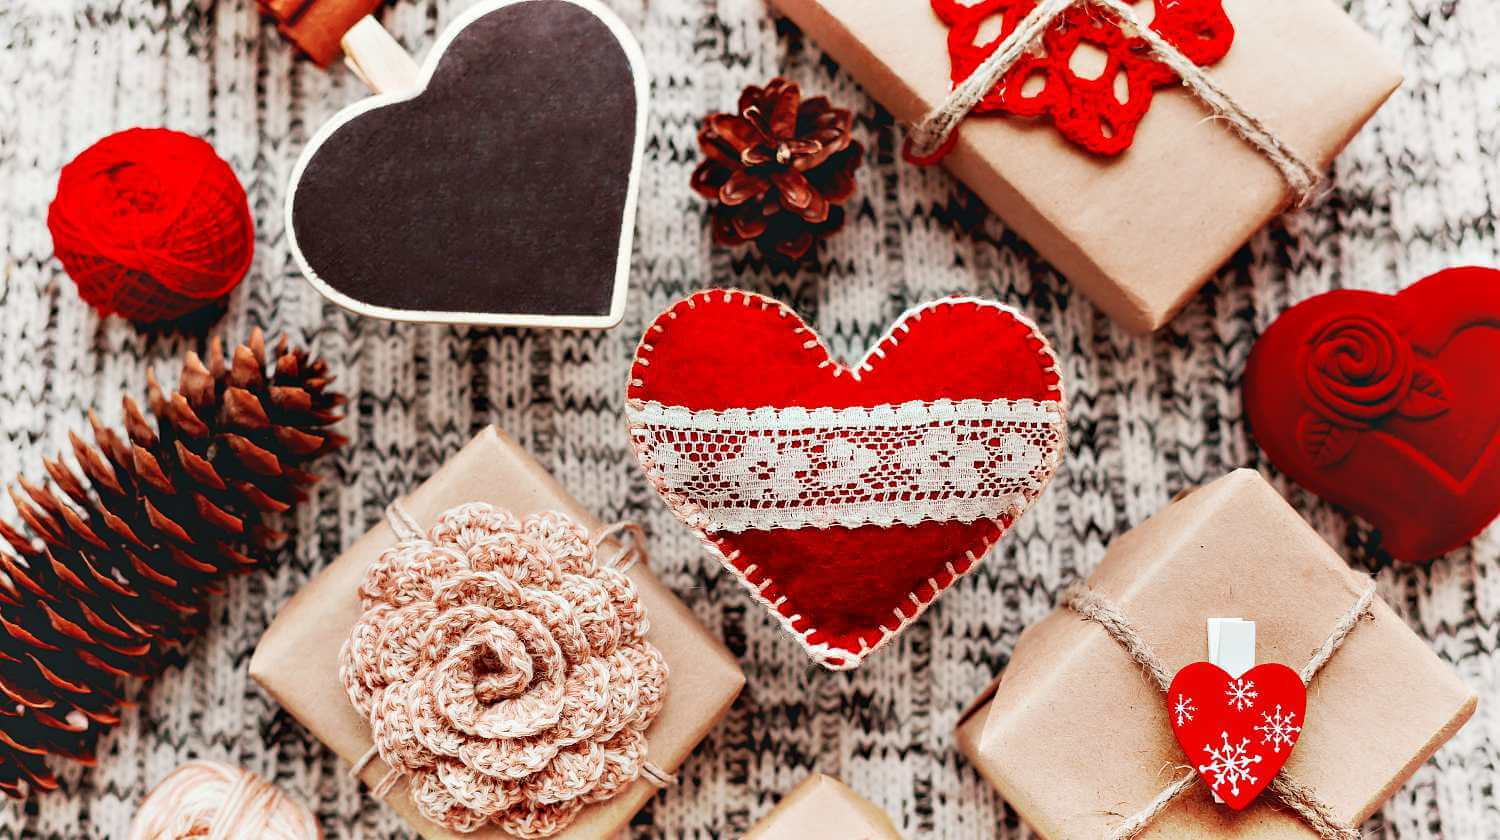 19 Cute DIY Ideas for Valentine's Day 2021